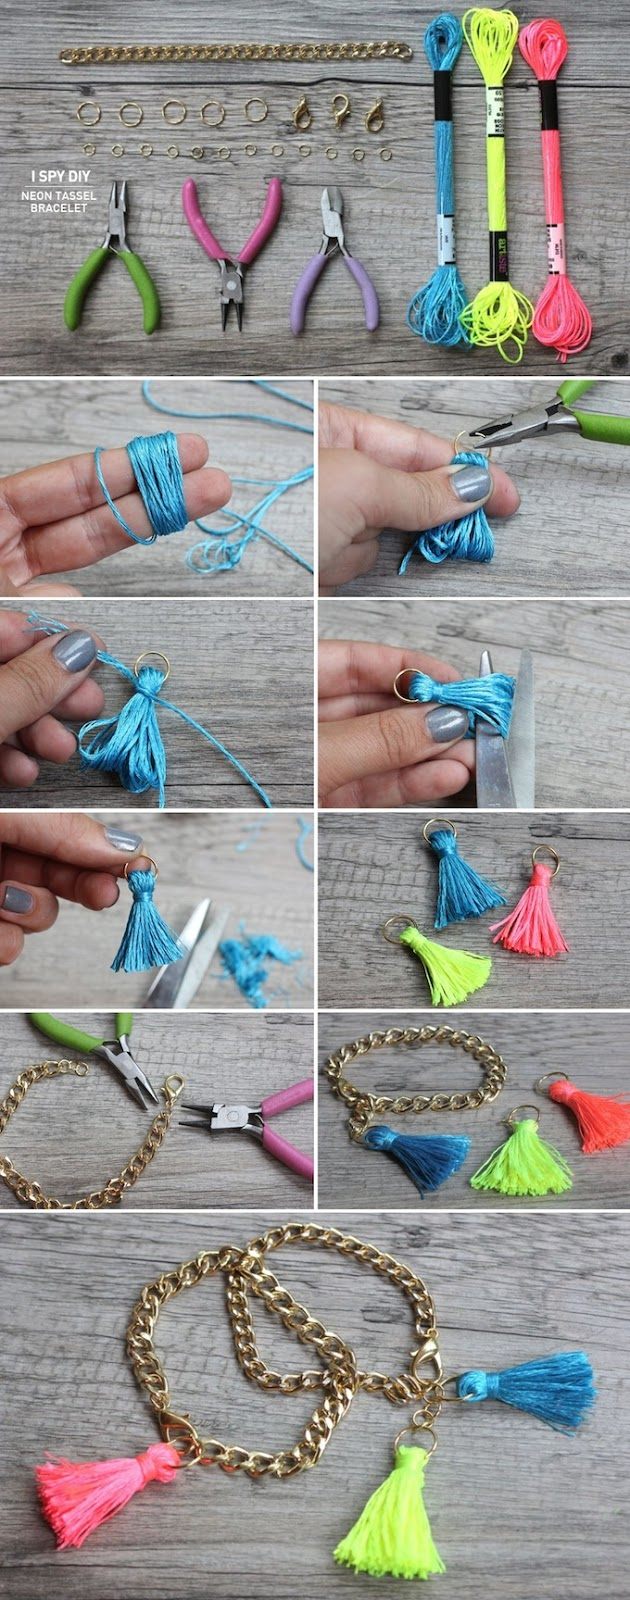 ����� ����� ����������� ,����� ����� ������ 2 ispydiy_necklace_tas